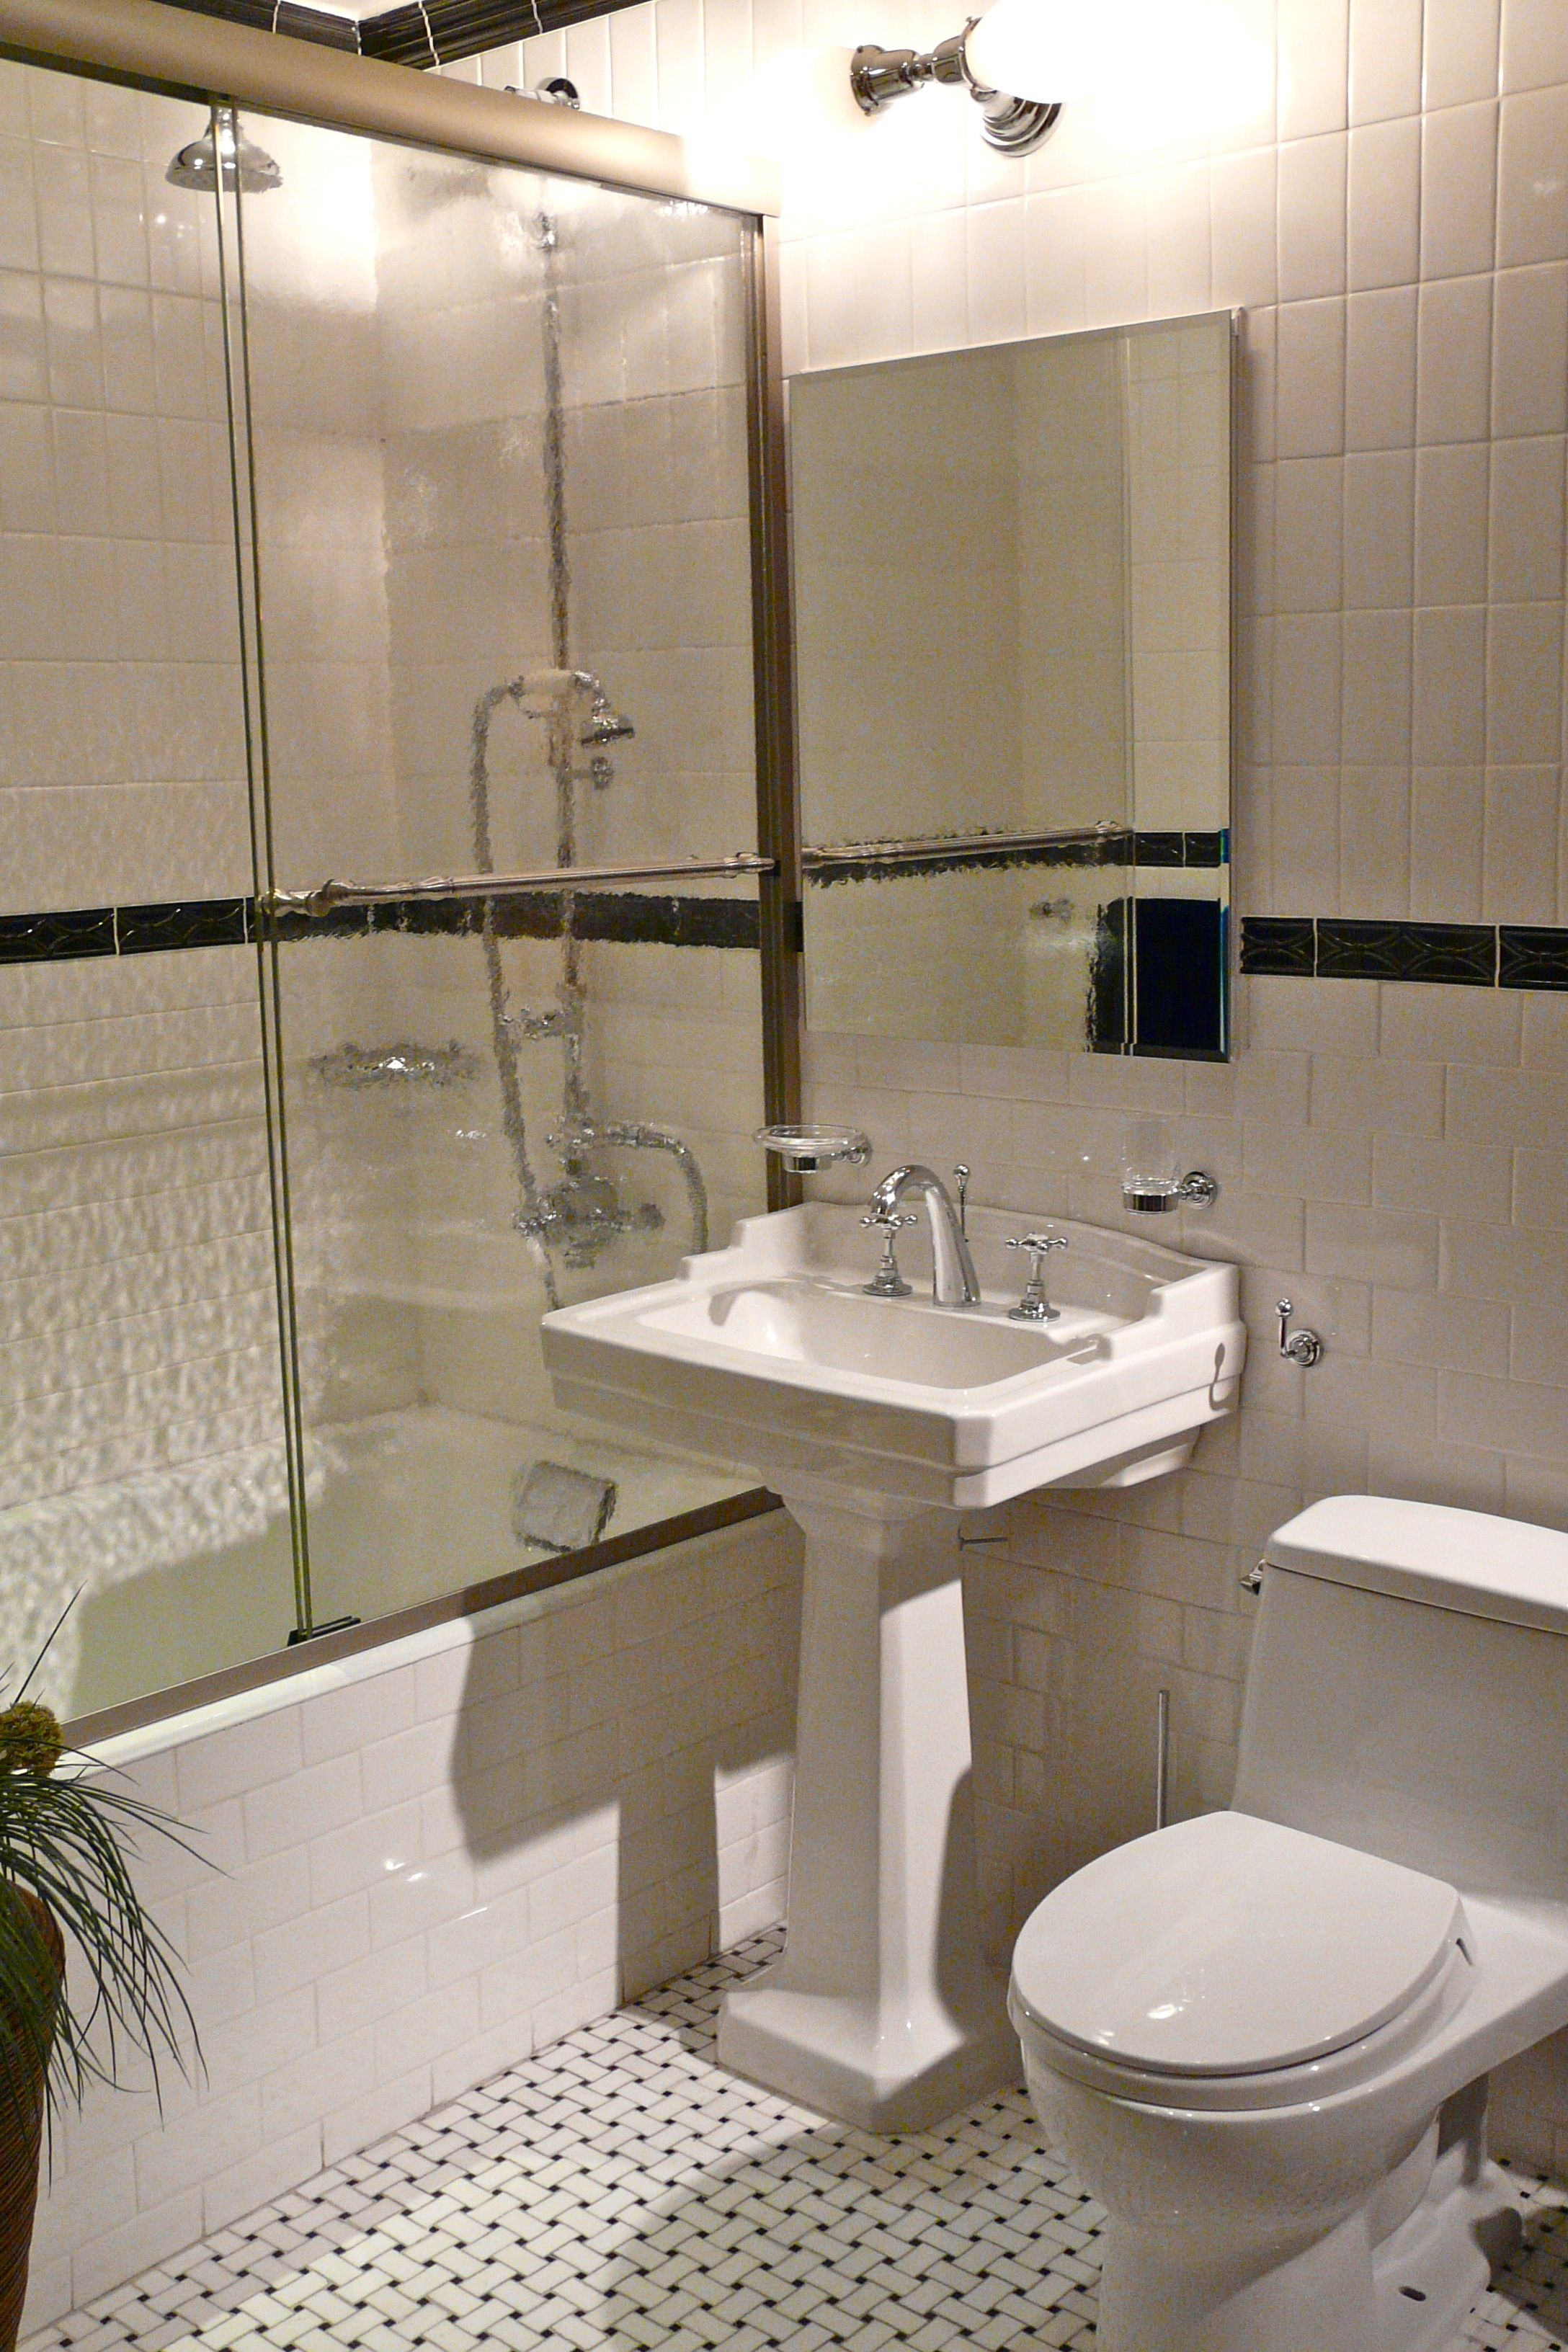 Small Bathroom Remodel Ideas cheap bathroom remodel cost to renovate a small bathroom low cost bathroom remodel Remodeling Bathrooms Bathroom Remodeling